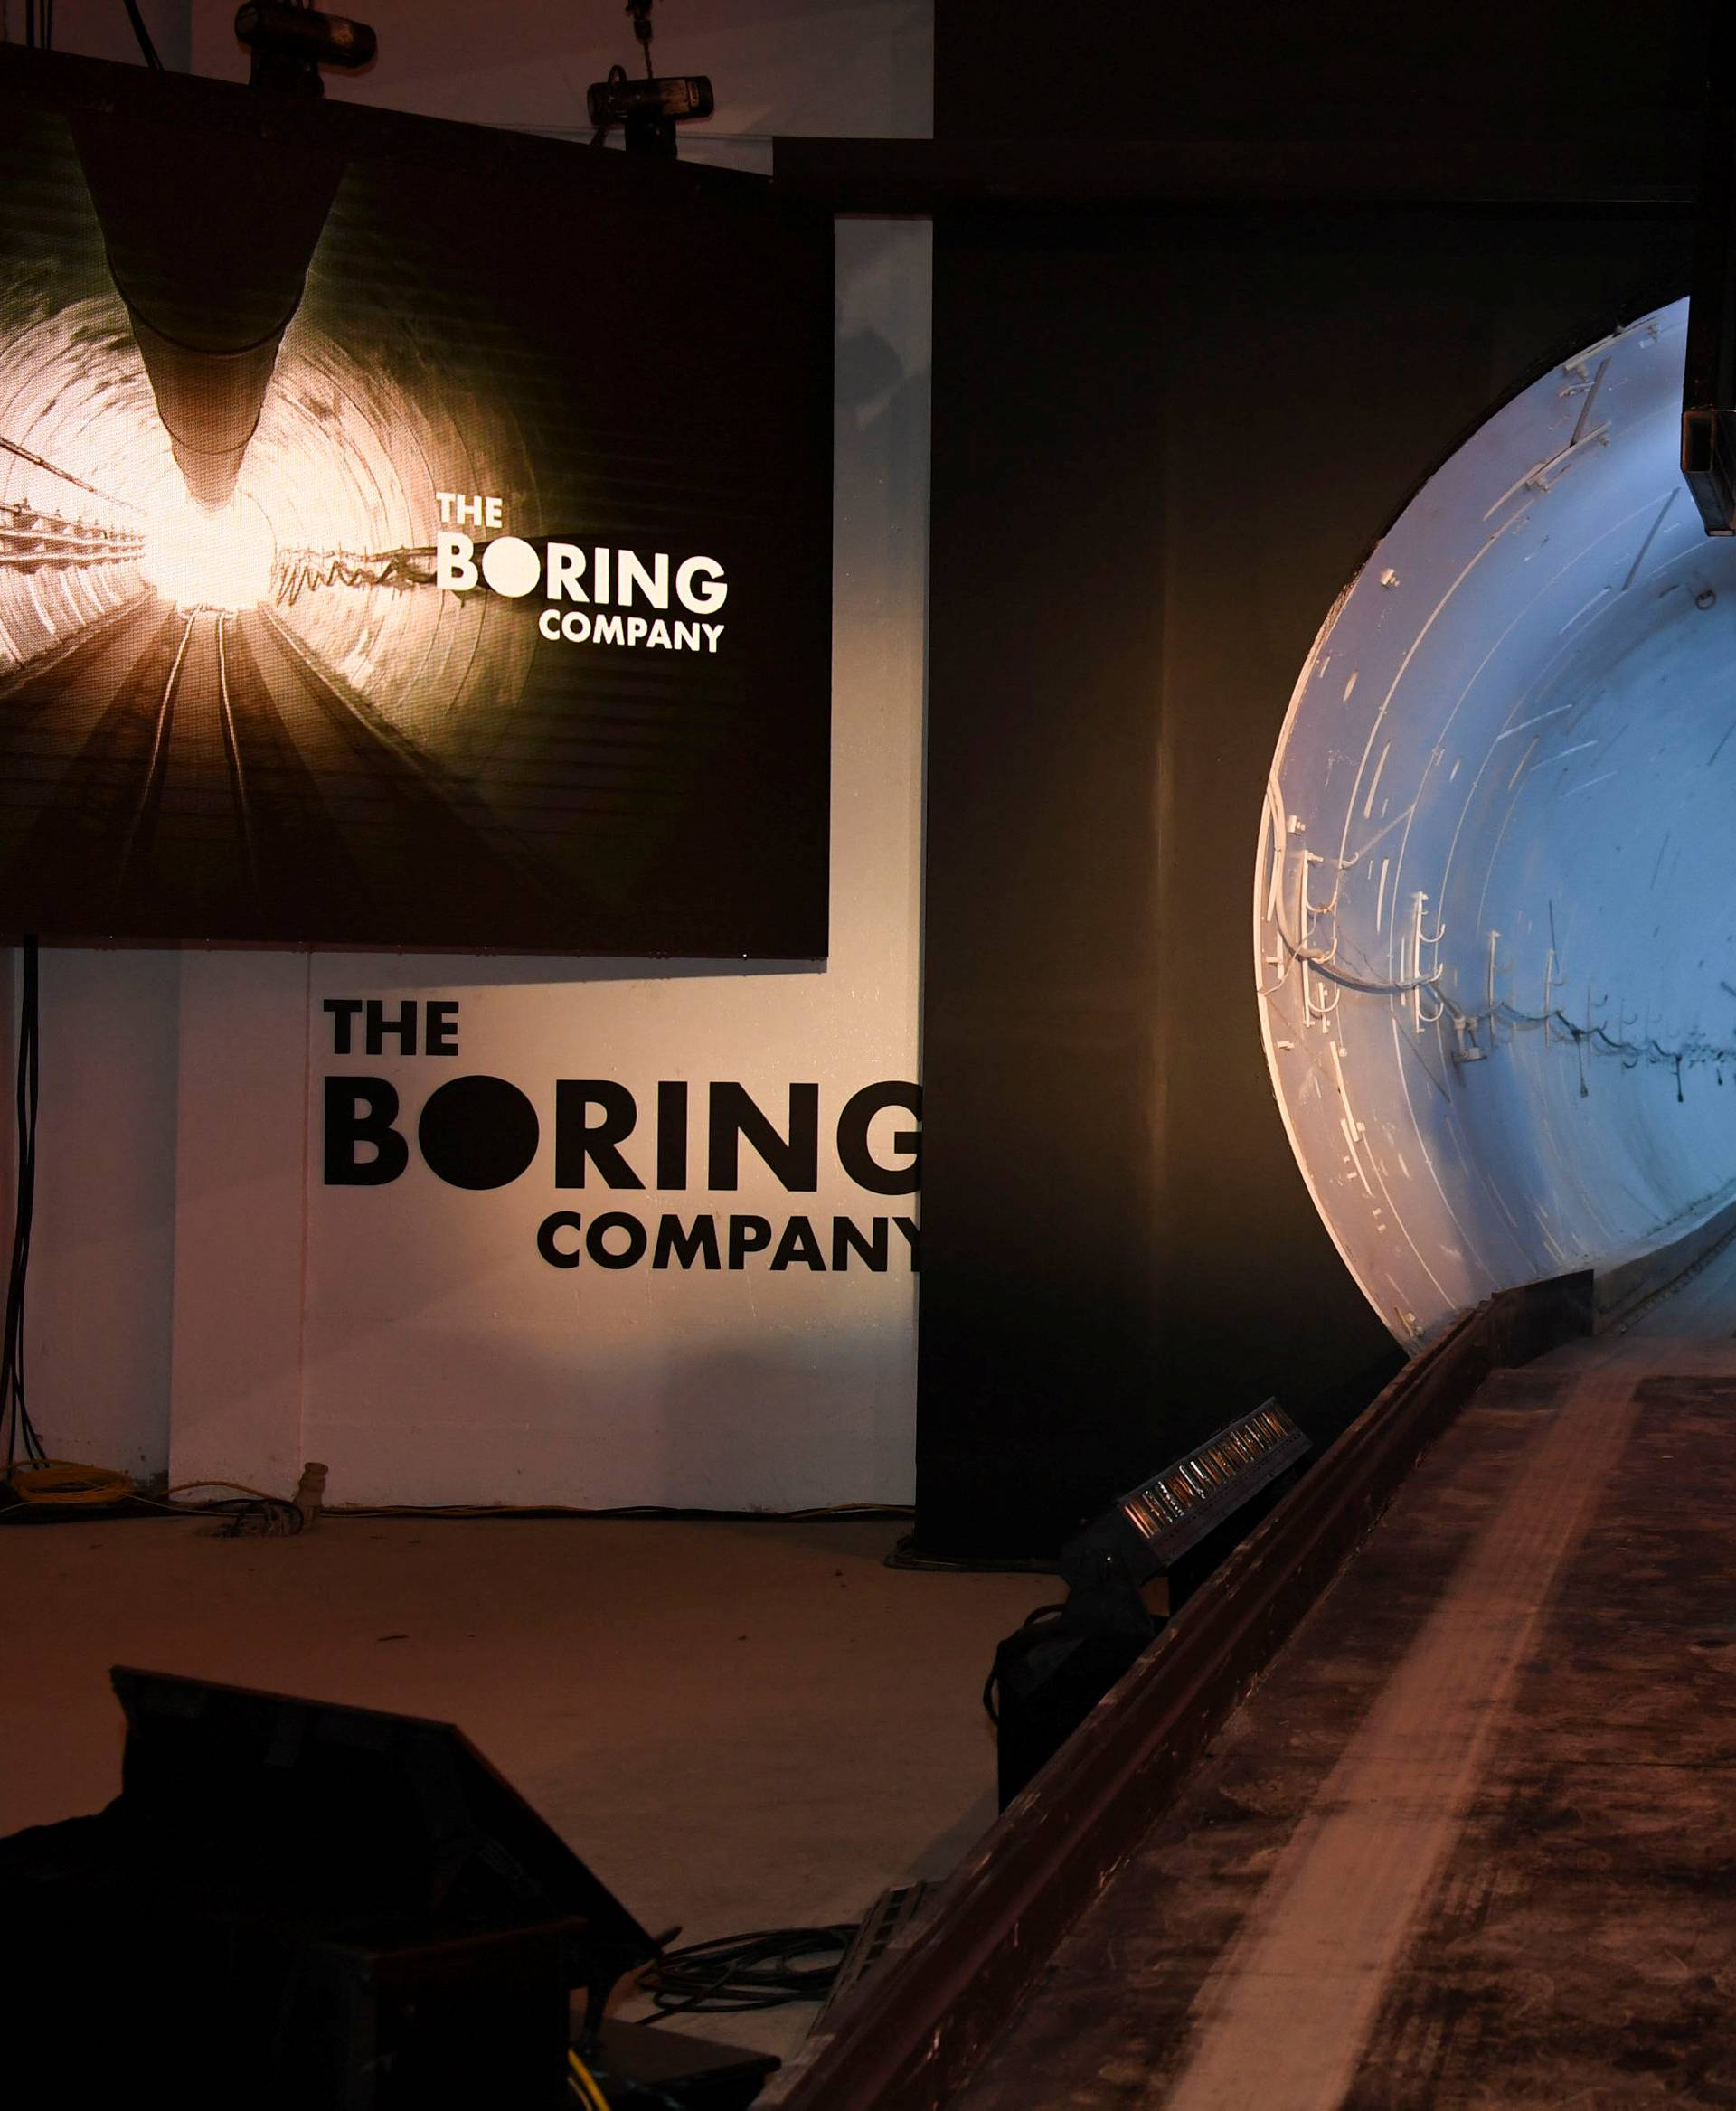 The Boring Company unveils first test tunnel of their transporation system in Hawthorne, California